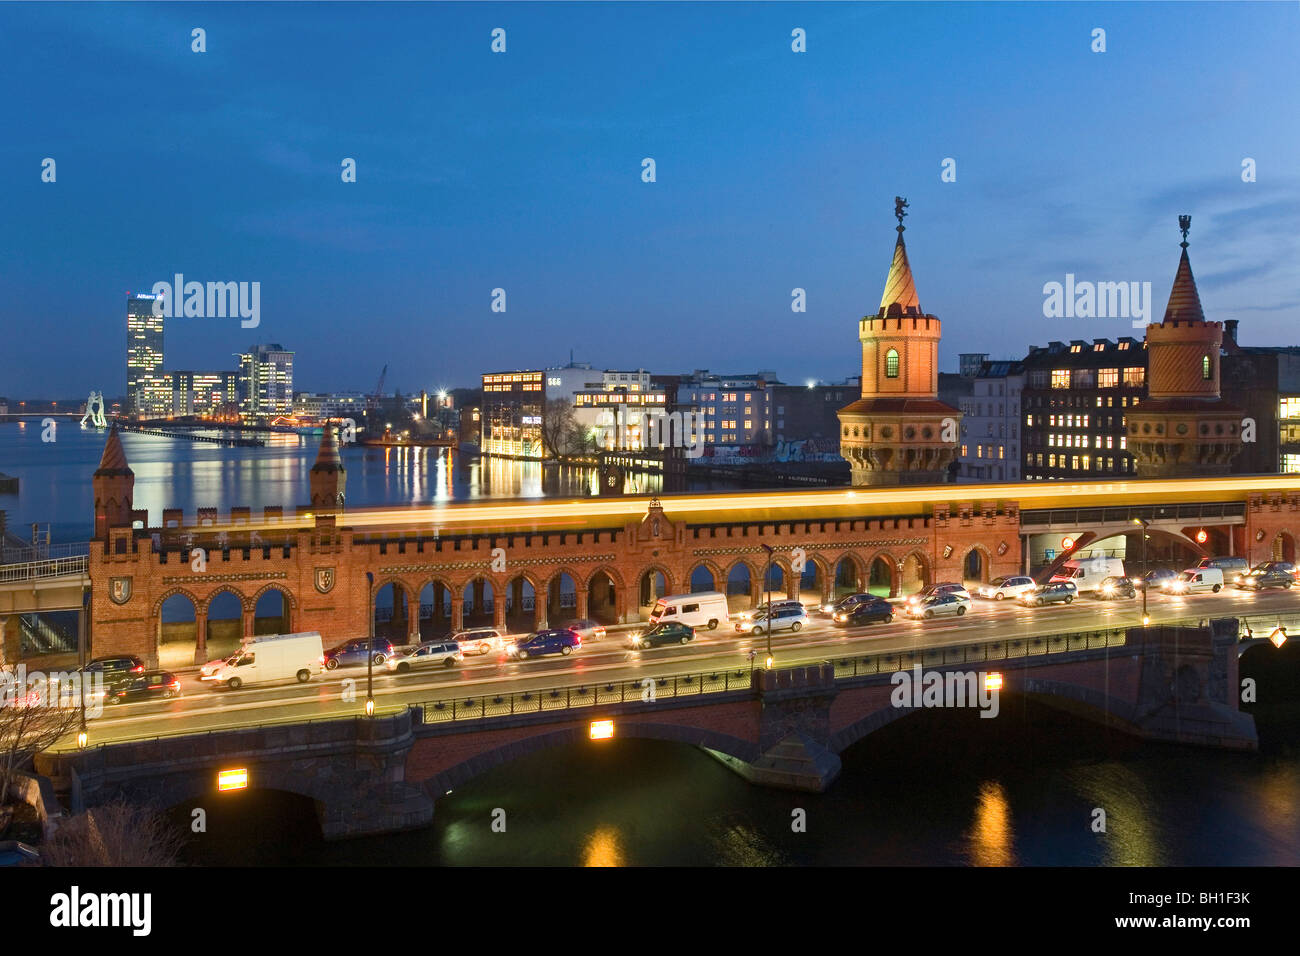 Cars and S-Bahn on the Oberbaum Bridge in the evening, Berlin, Germany, Europe Stock Photo